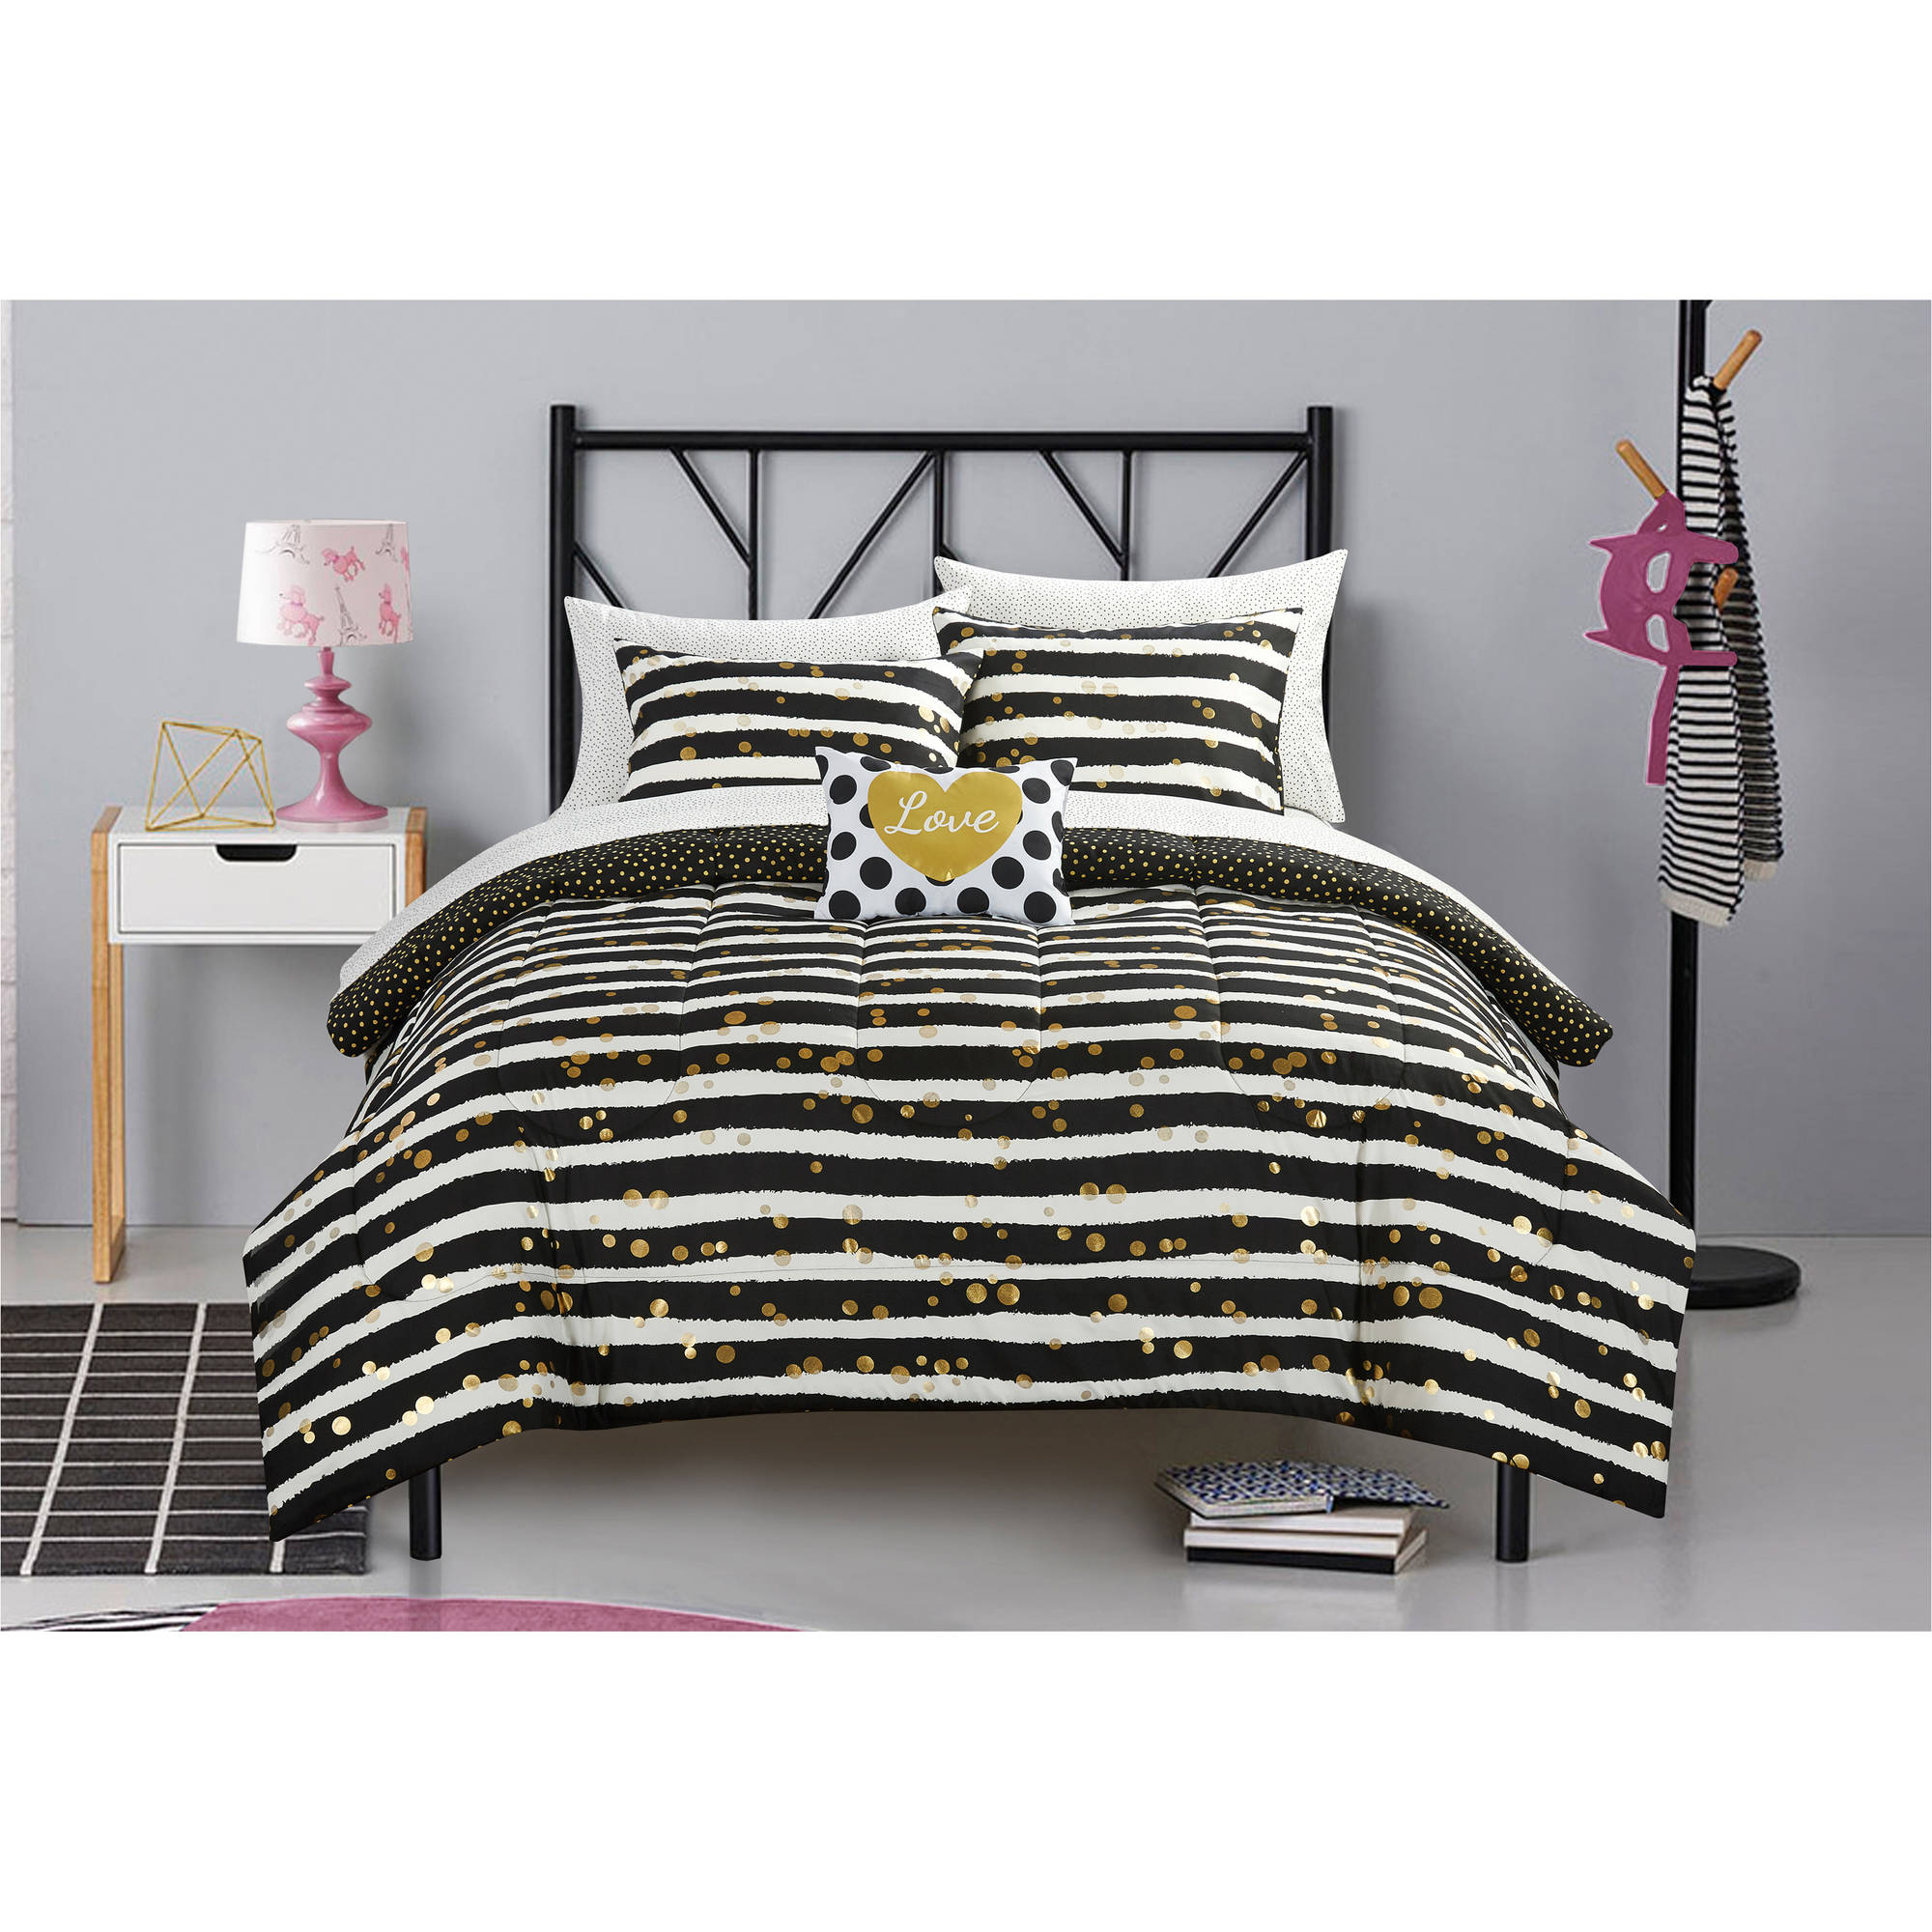 walmart bath and bag gallant duvet target awesome dashing in king bed a comforter bedding beyond size sets bedspread skull bedspreads cheap covers set queen ga